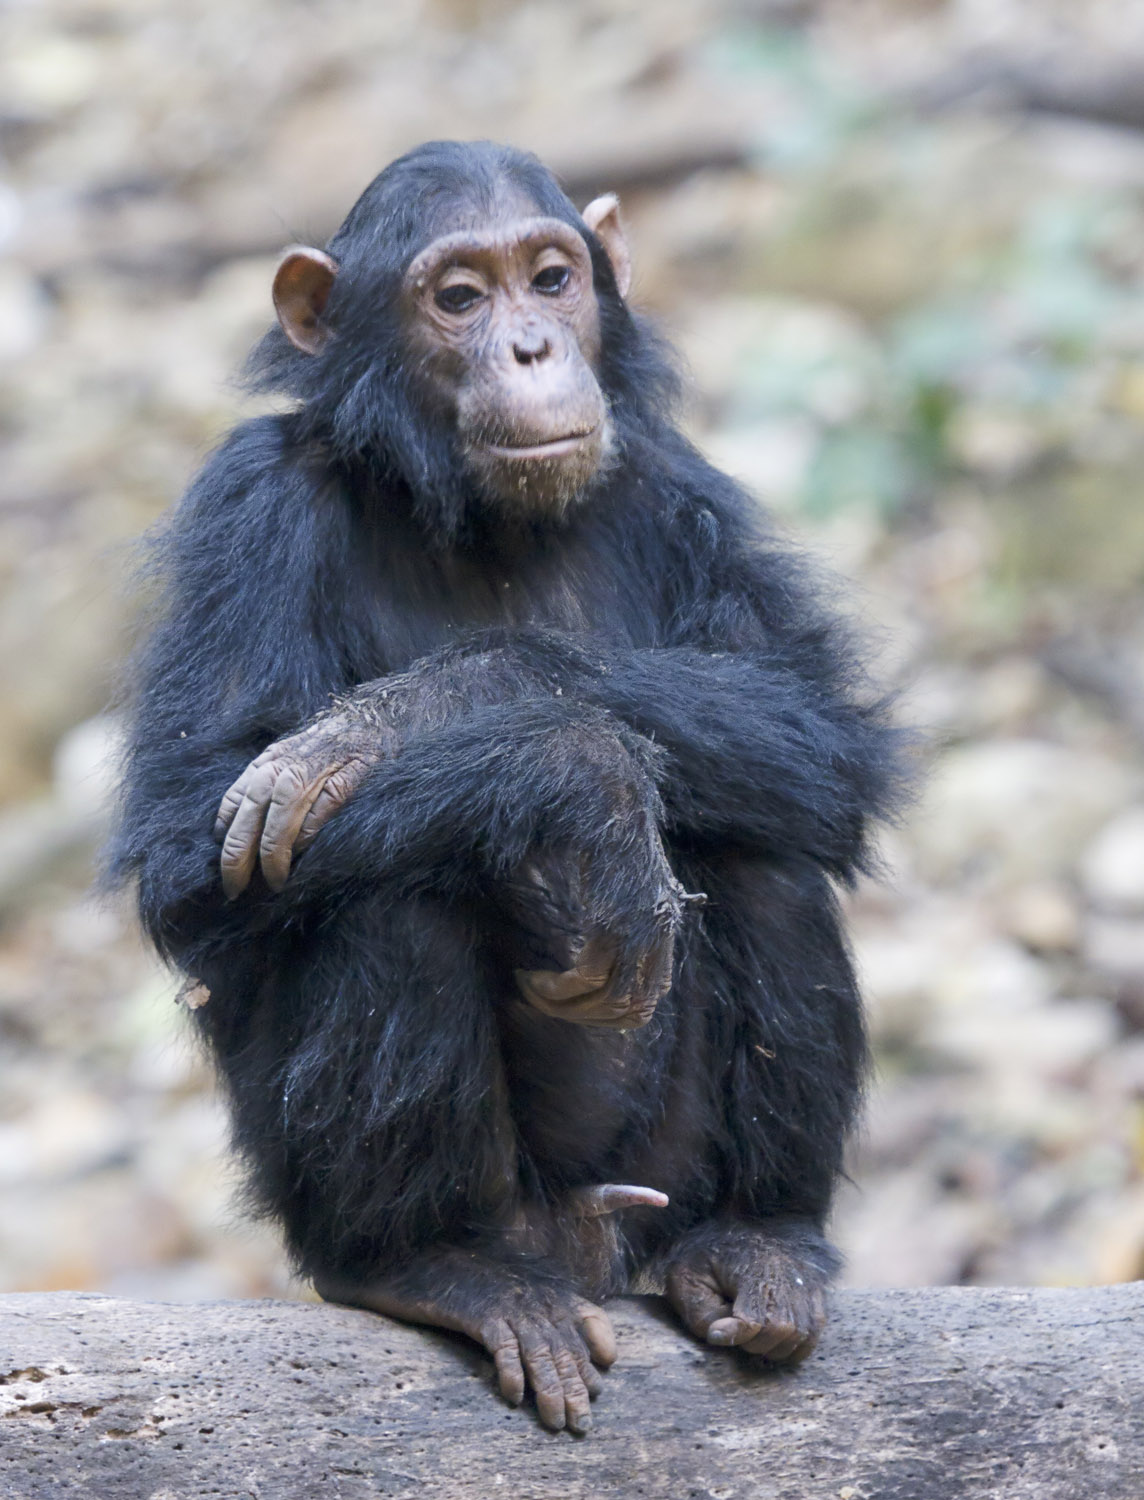 Meet the Family: Investigating Primate Relationships Images